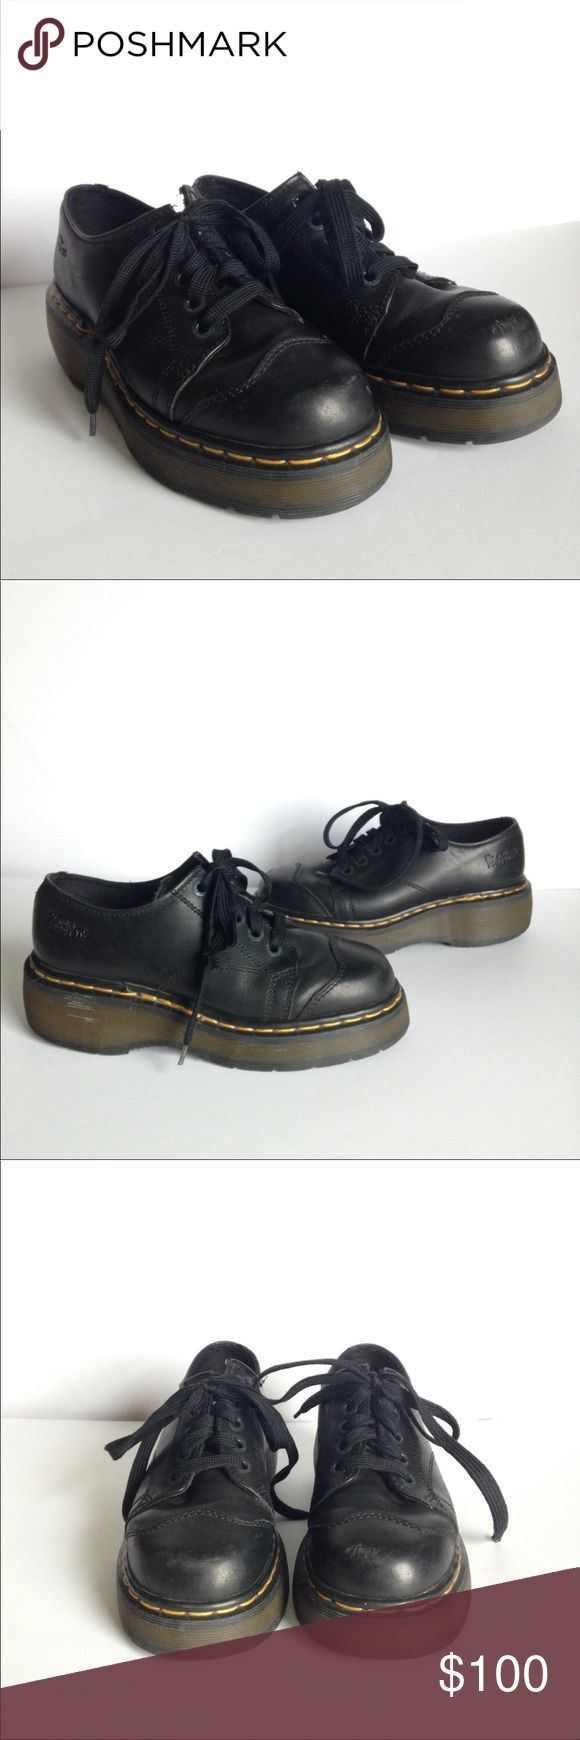 VINTAGE LACE UP DOC MARTENS SHOES IN BLACK EUC HIT BUY BUTTON OR BUNDLE FOR A BETTER DISCOUNT. CLOSET CLEARANCE EVERYTHING MUST GO ASAP. THANK YOU AND GOD BLESS. MOST REASONABLE OFFERS WILL BE ACCEPTED. XXOO Dr. Martens Shoes